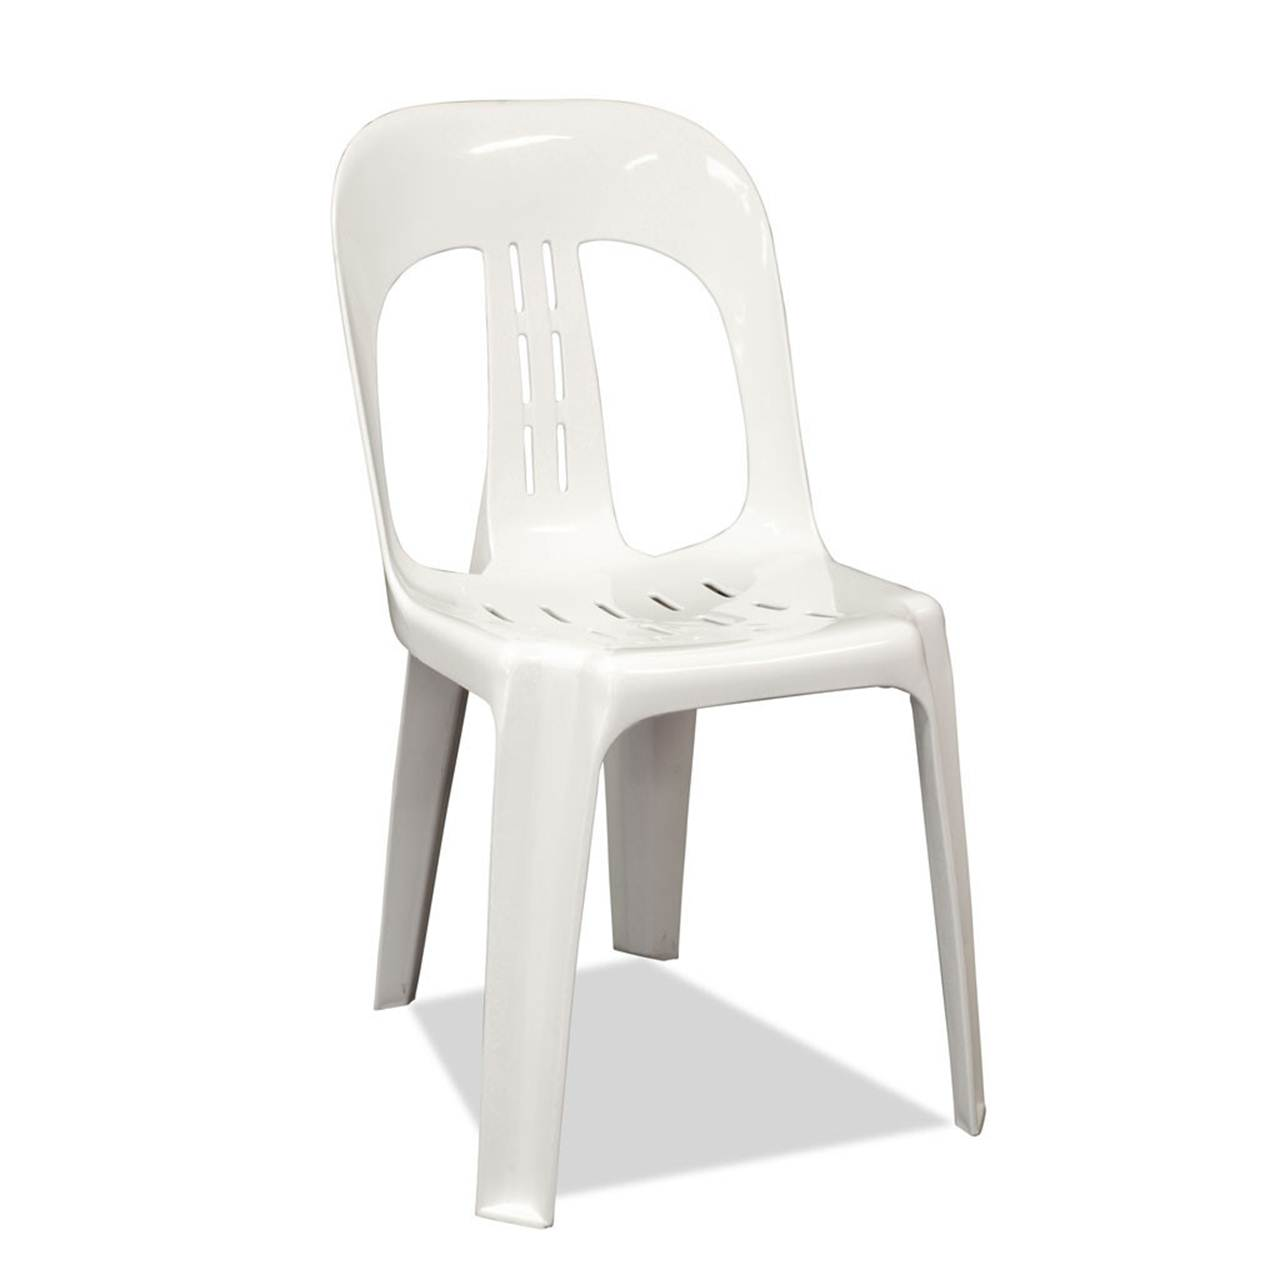 White plastic stacking chair mr party hire - White resin stacking chairs ...